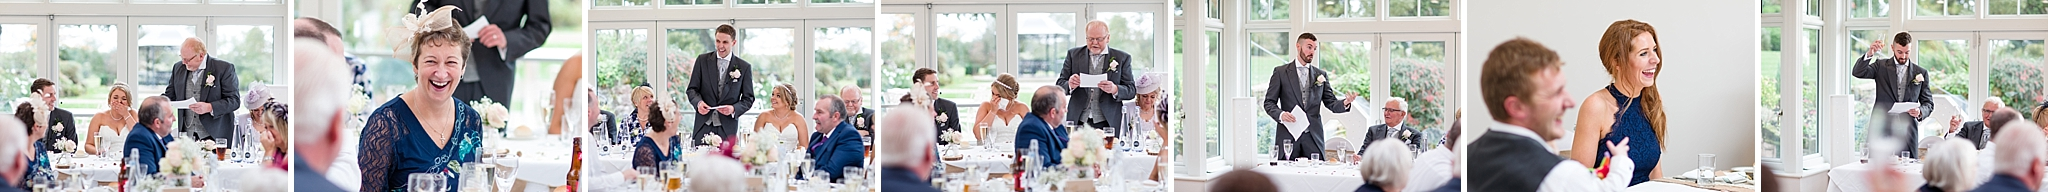 wedding photographer the upper house staffordshire 13.jpg